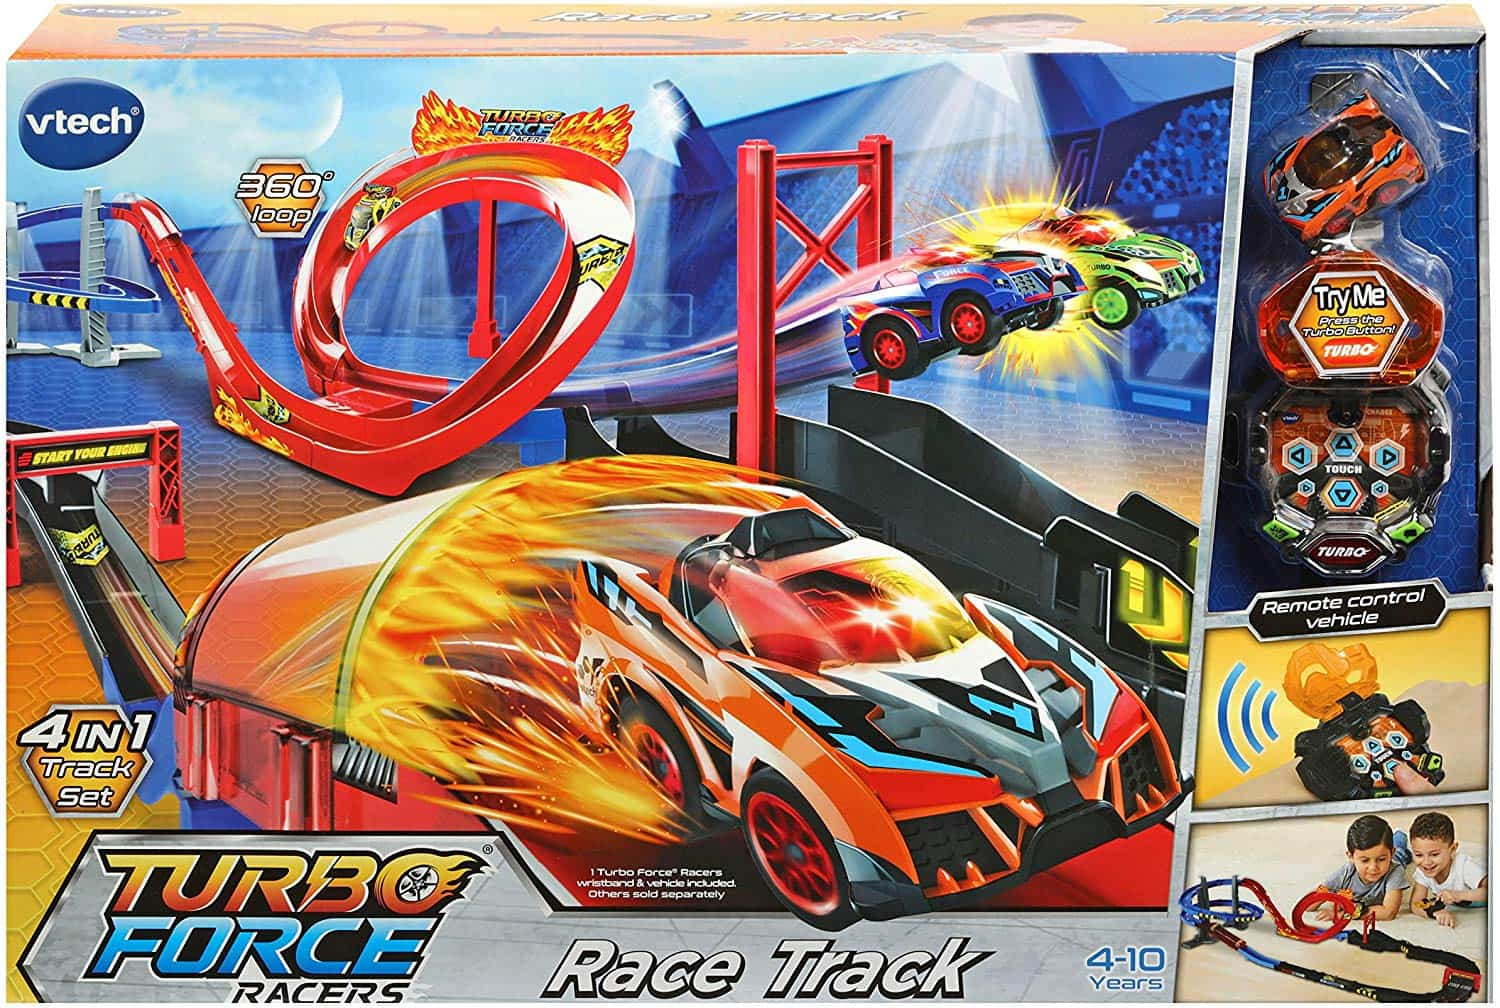 Circuito de carreras Turbo Force Racers